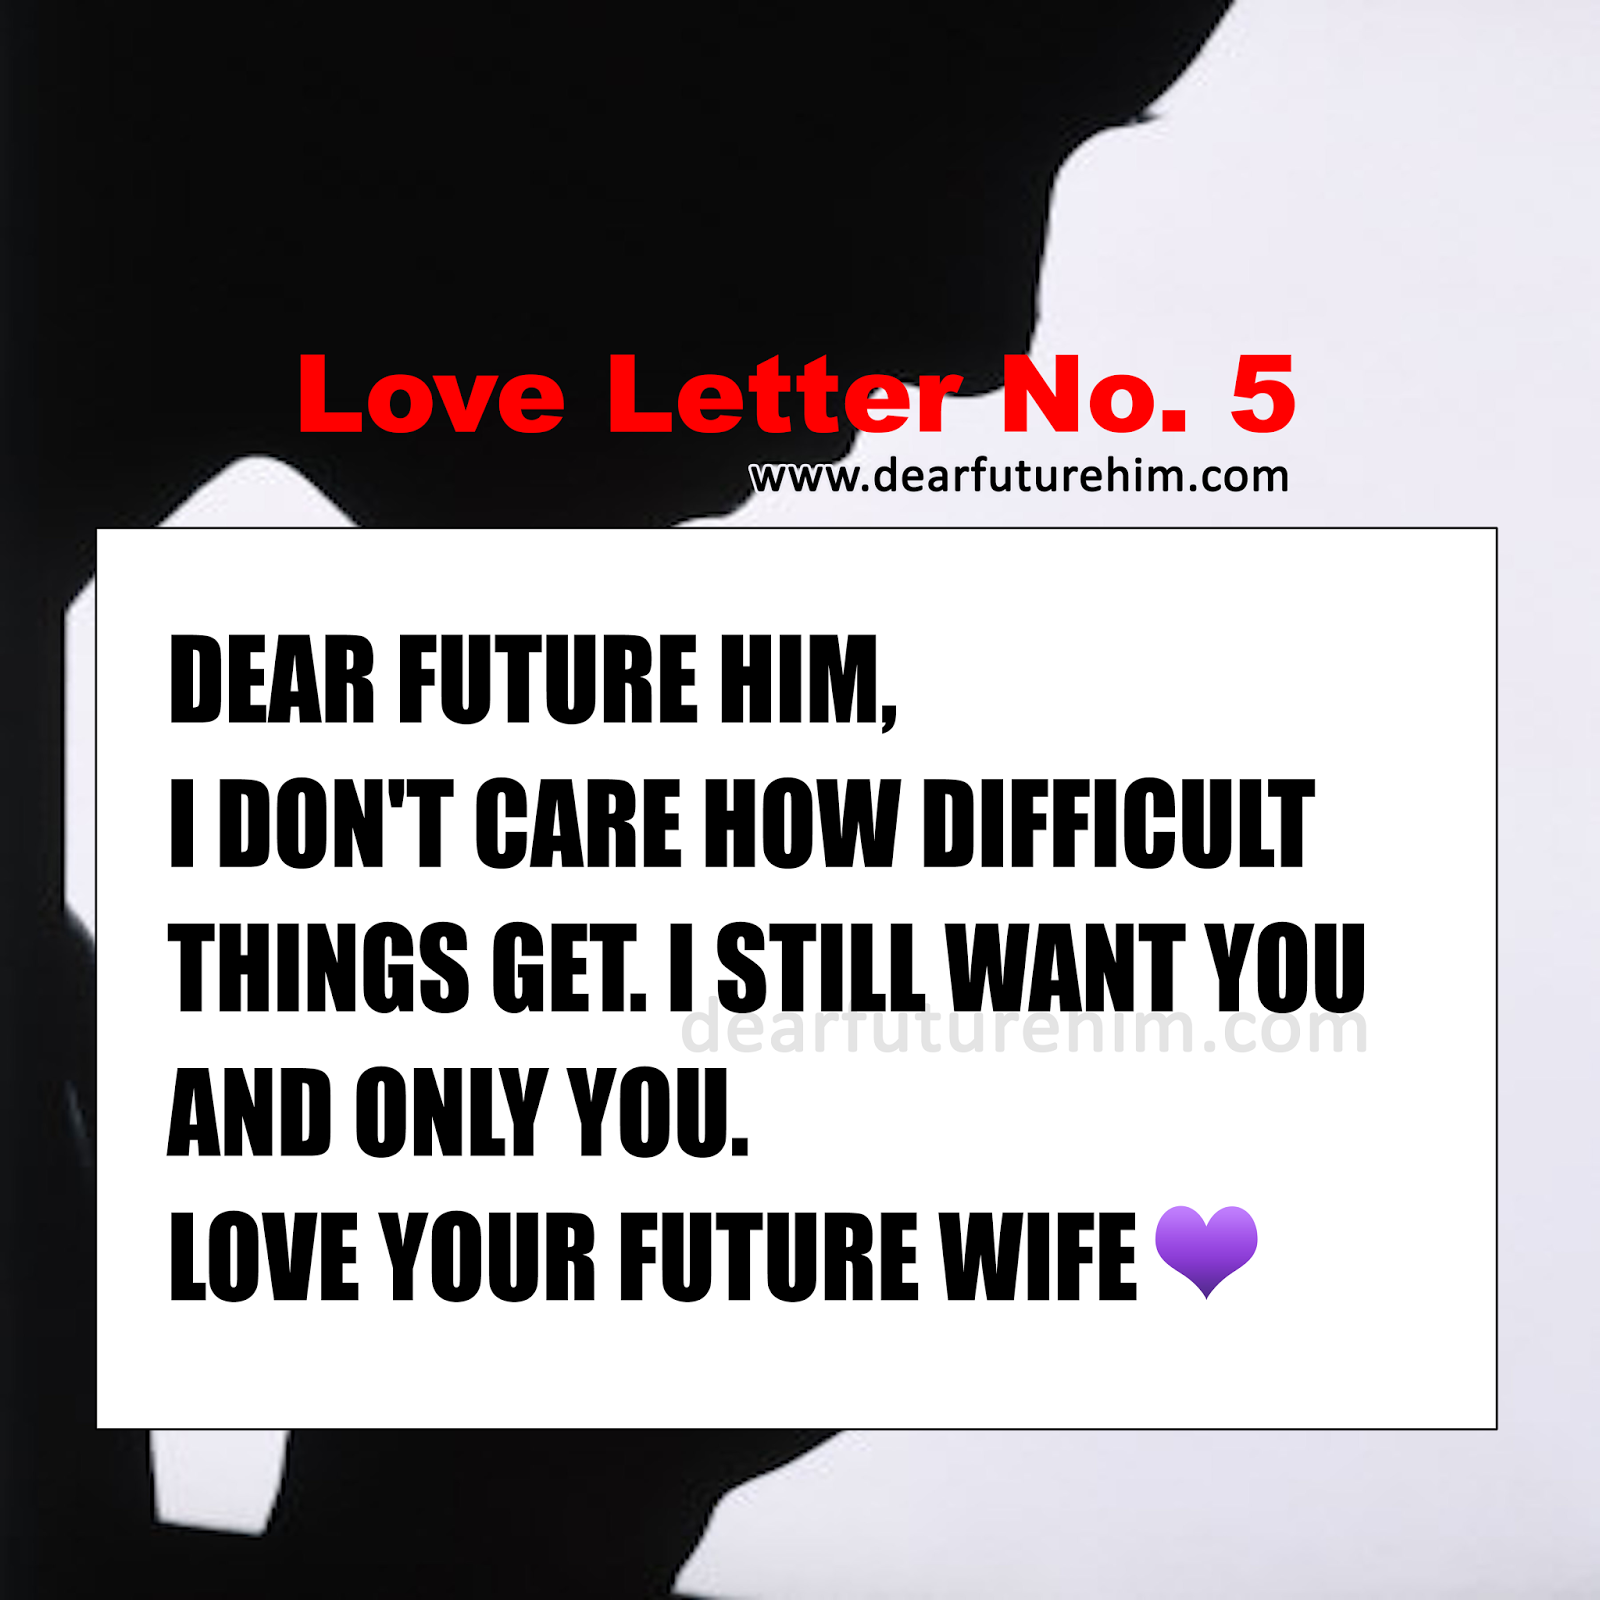 No Matter What I ly Want You Dear Future Him